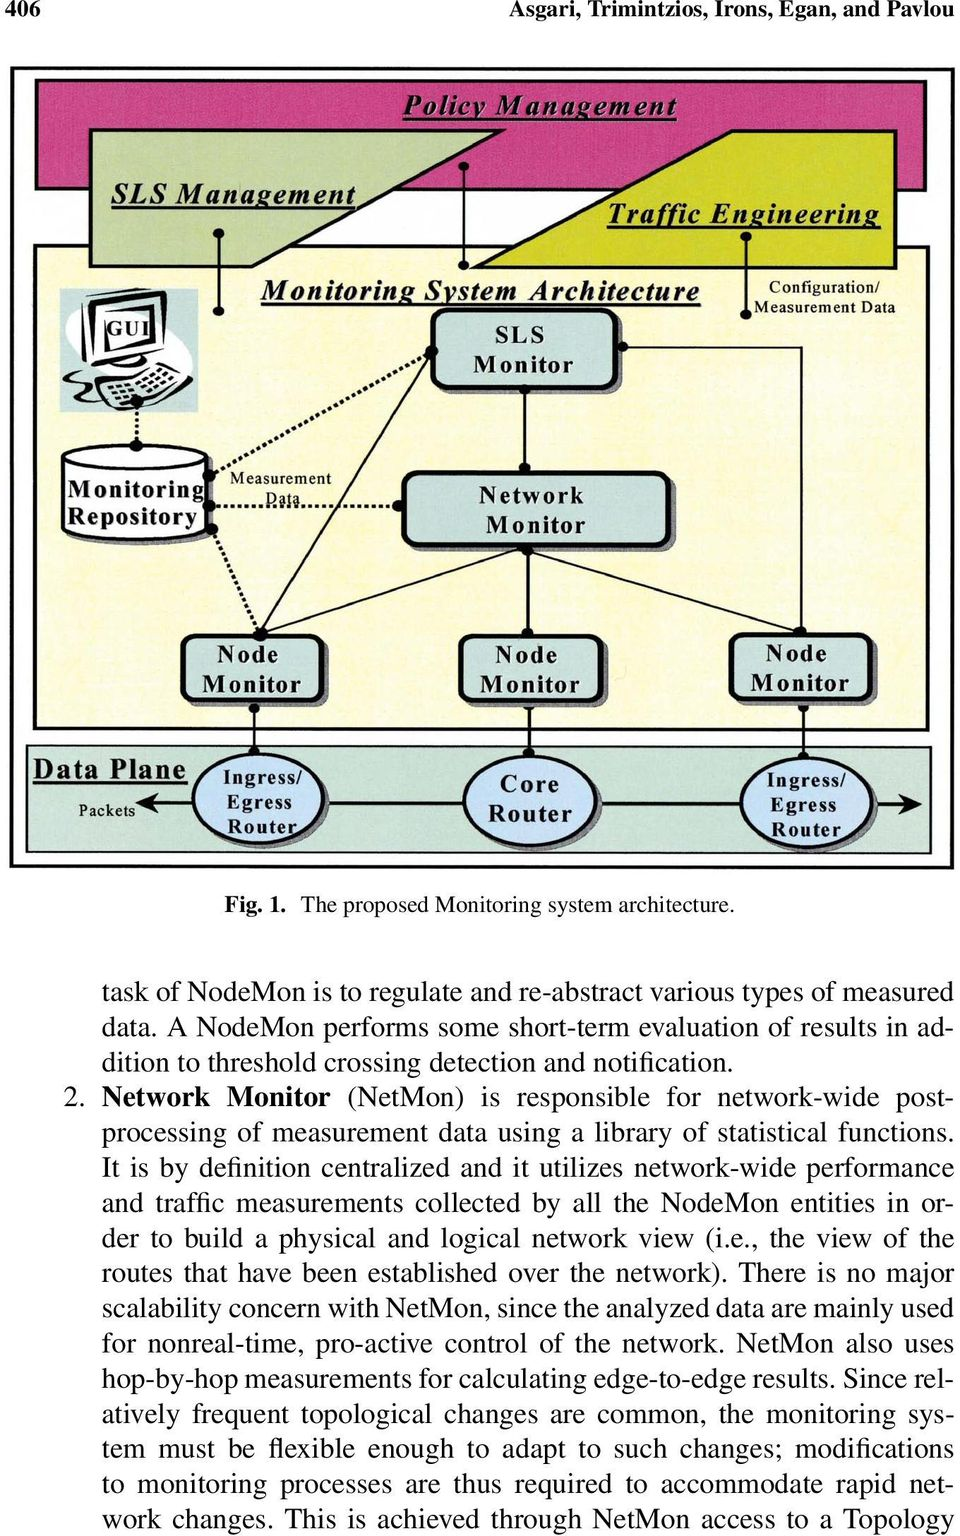 Network Monitor (NetMon) is responsible for network-wide postprocessing of measurement data using a library of statistical functions.